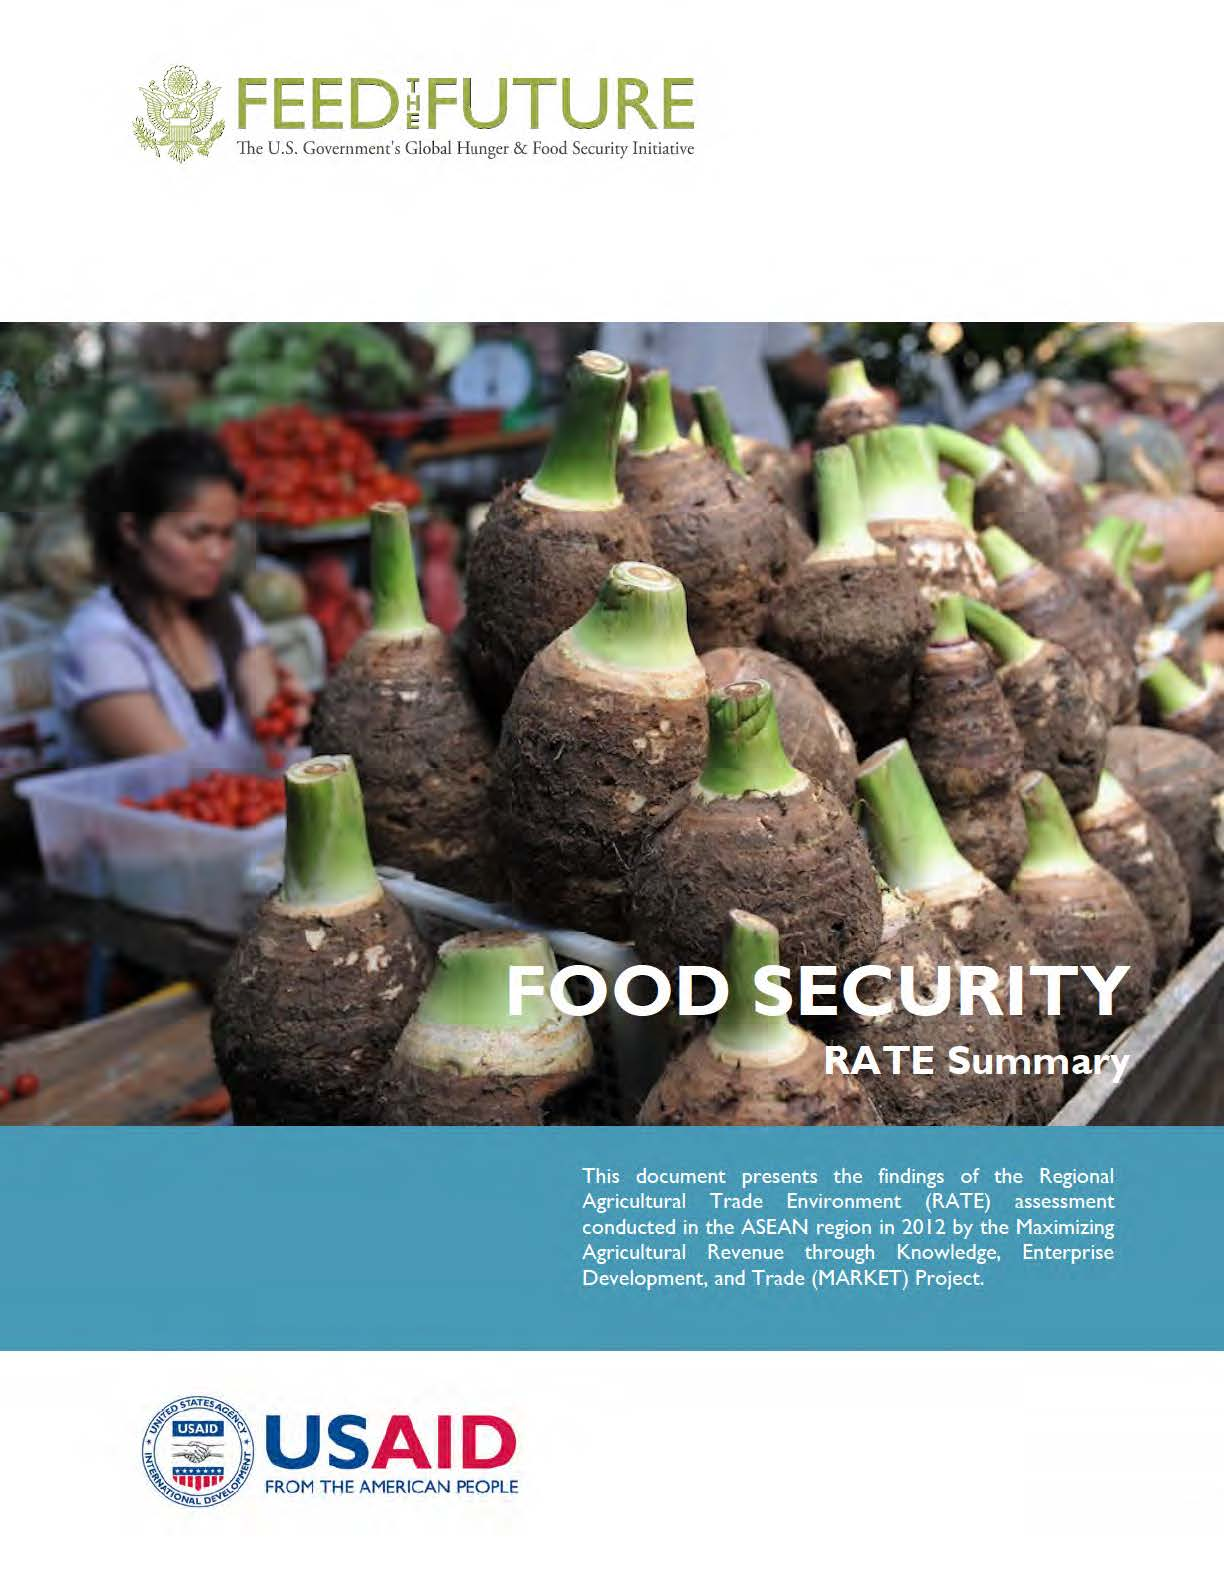 ASEAN Regional Agricultural Trade Environment Assessment Reports: Food Security